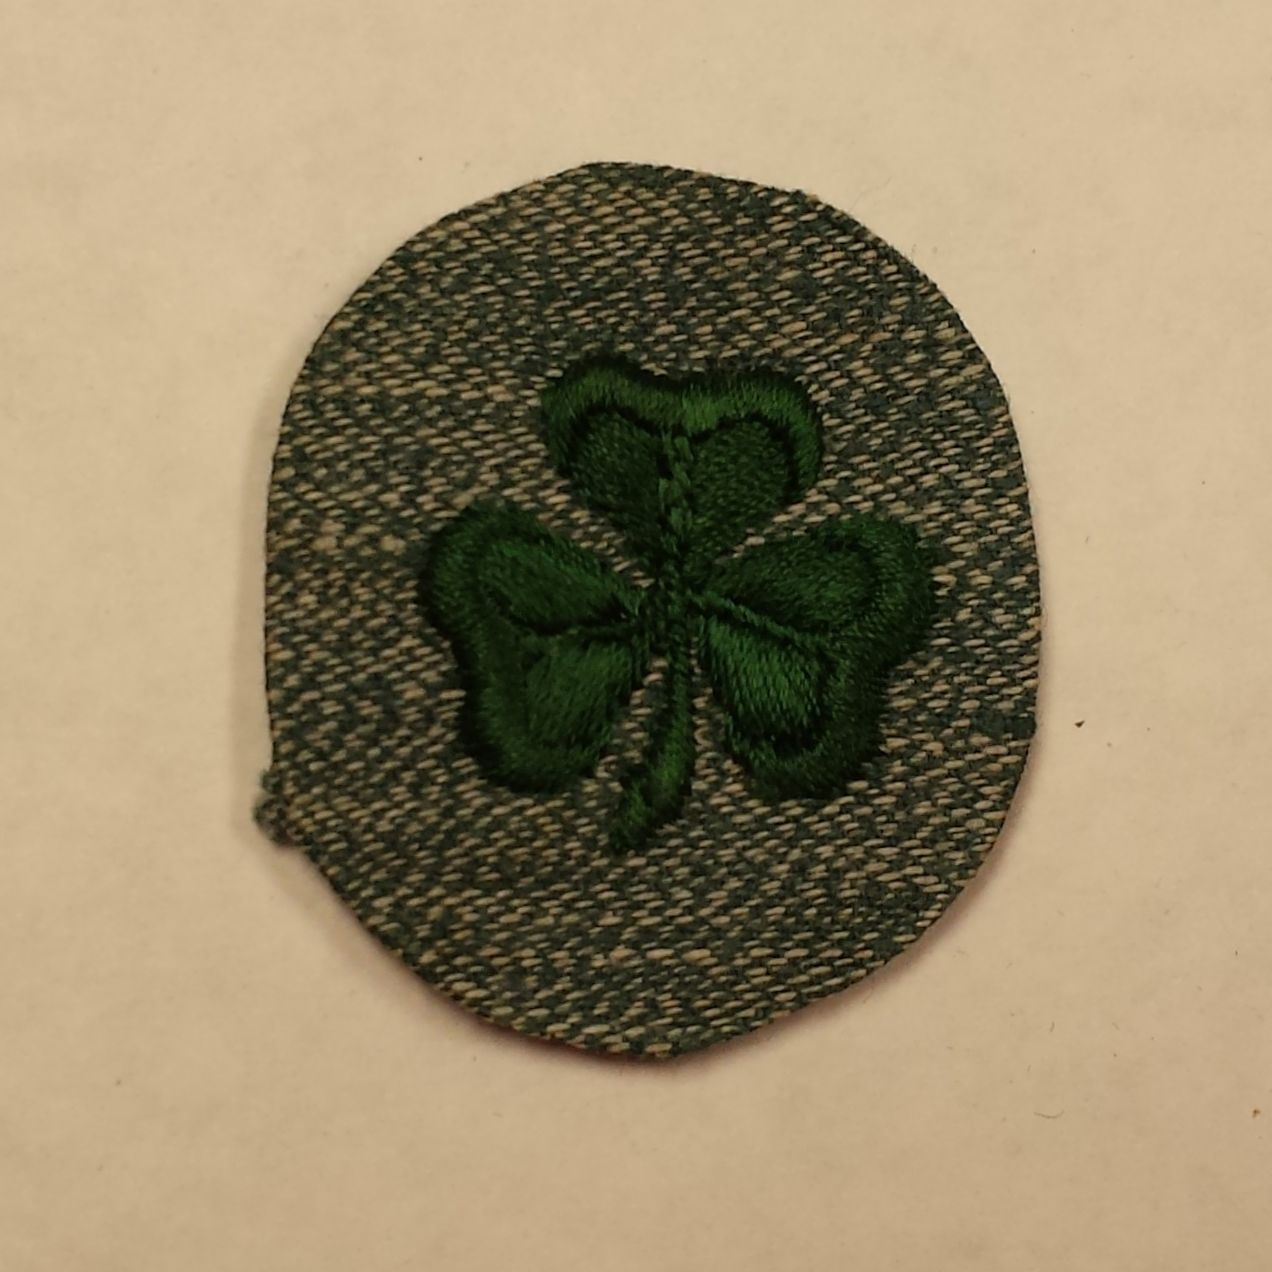 1912 1938 proficiency badges girl scouts make history 1920 55 second class rank robcynllc Gallery